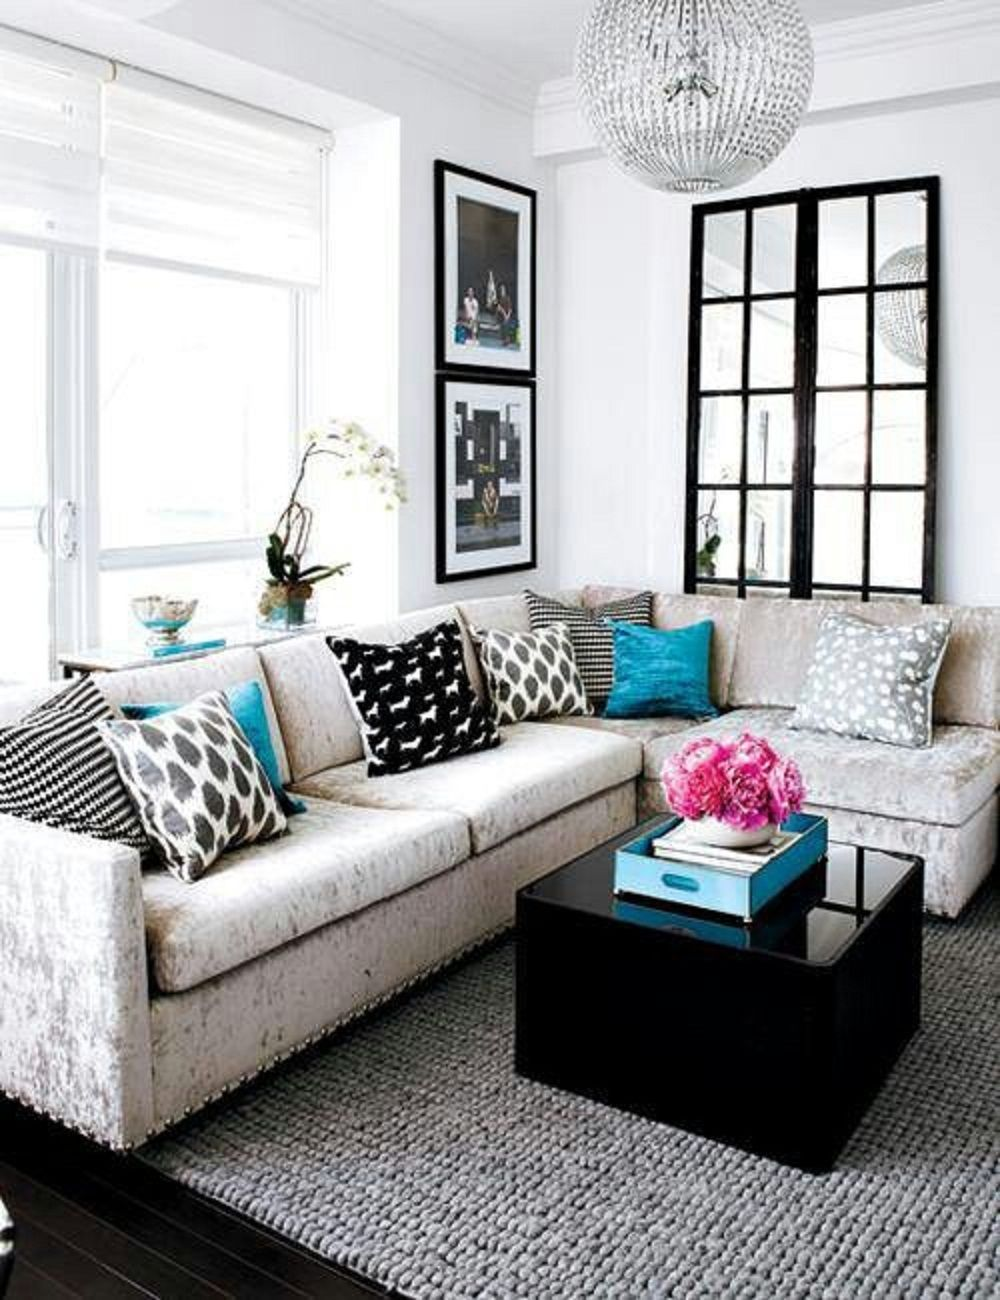 Lshaped Sofa For Small Spaces  Interior House Paint Ideas Check Fascinating Living Room Designs For Small Spaces Inspiration Design